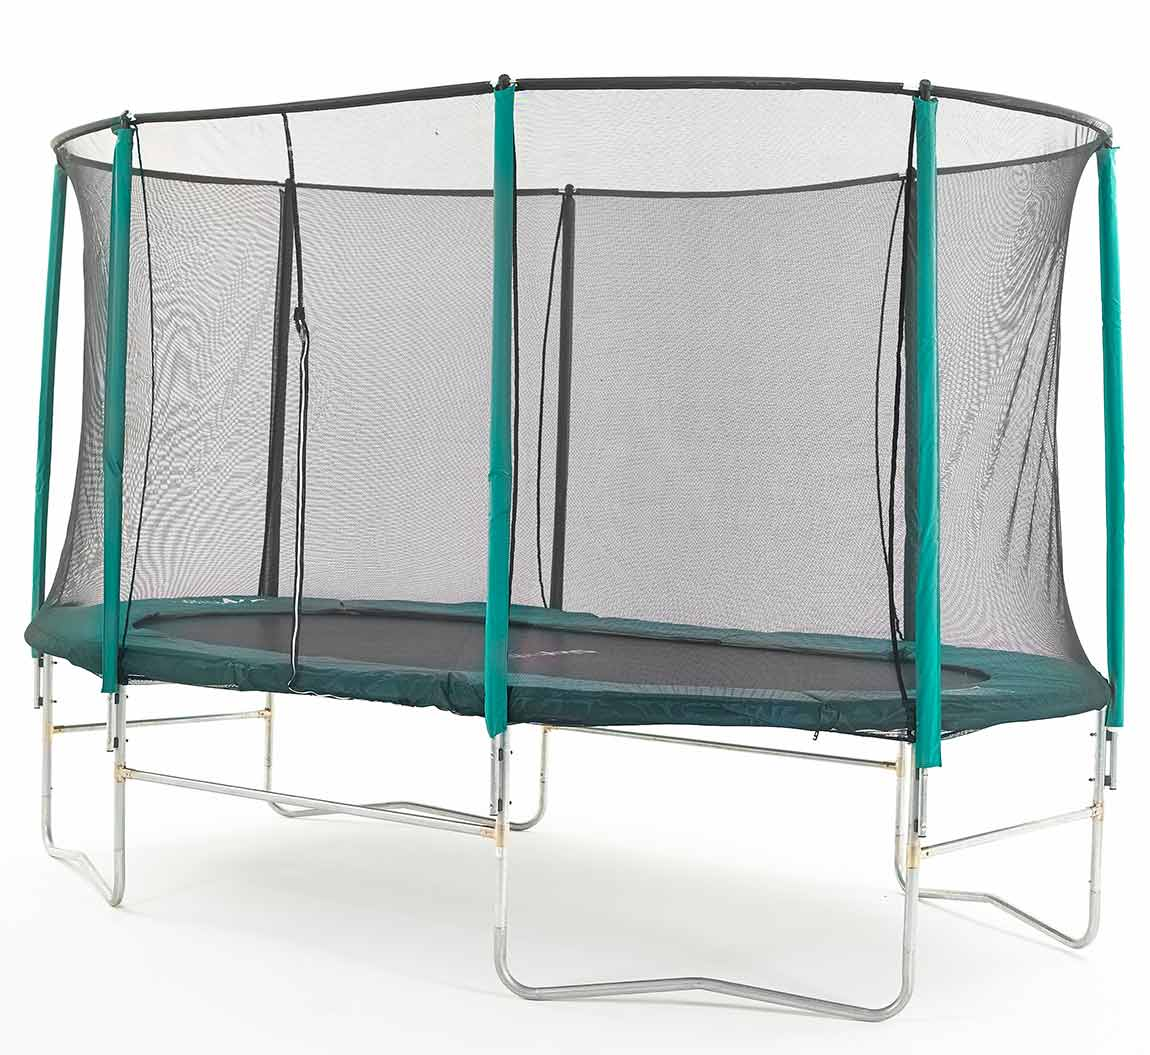 8ft X 14ft Skyhigh Oval Trampoline And Safety Enclosure